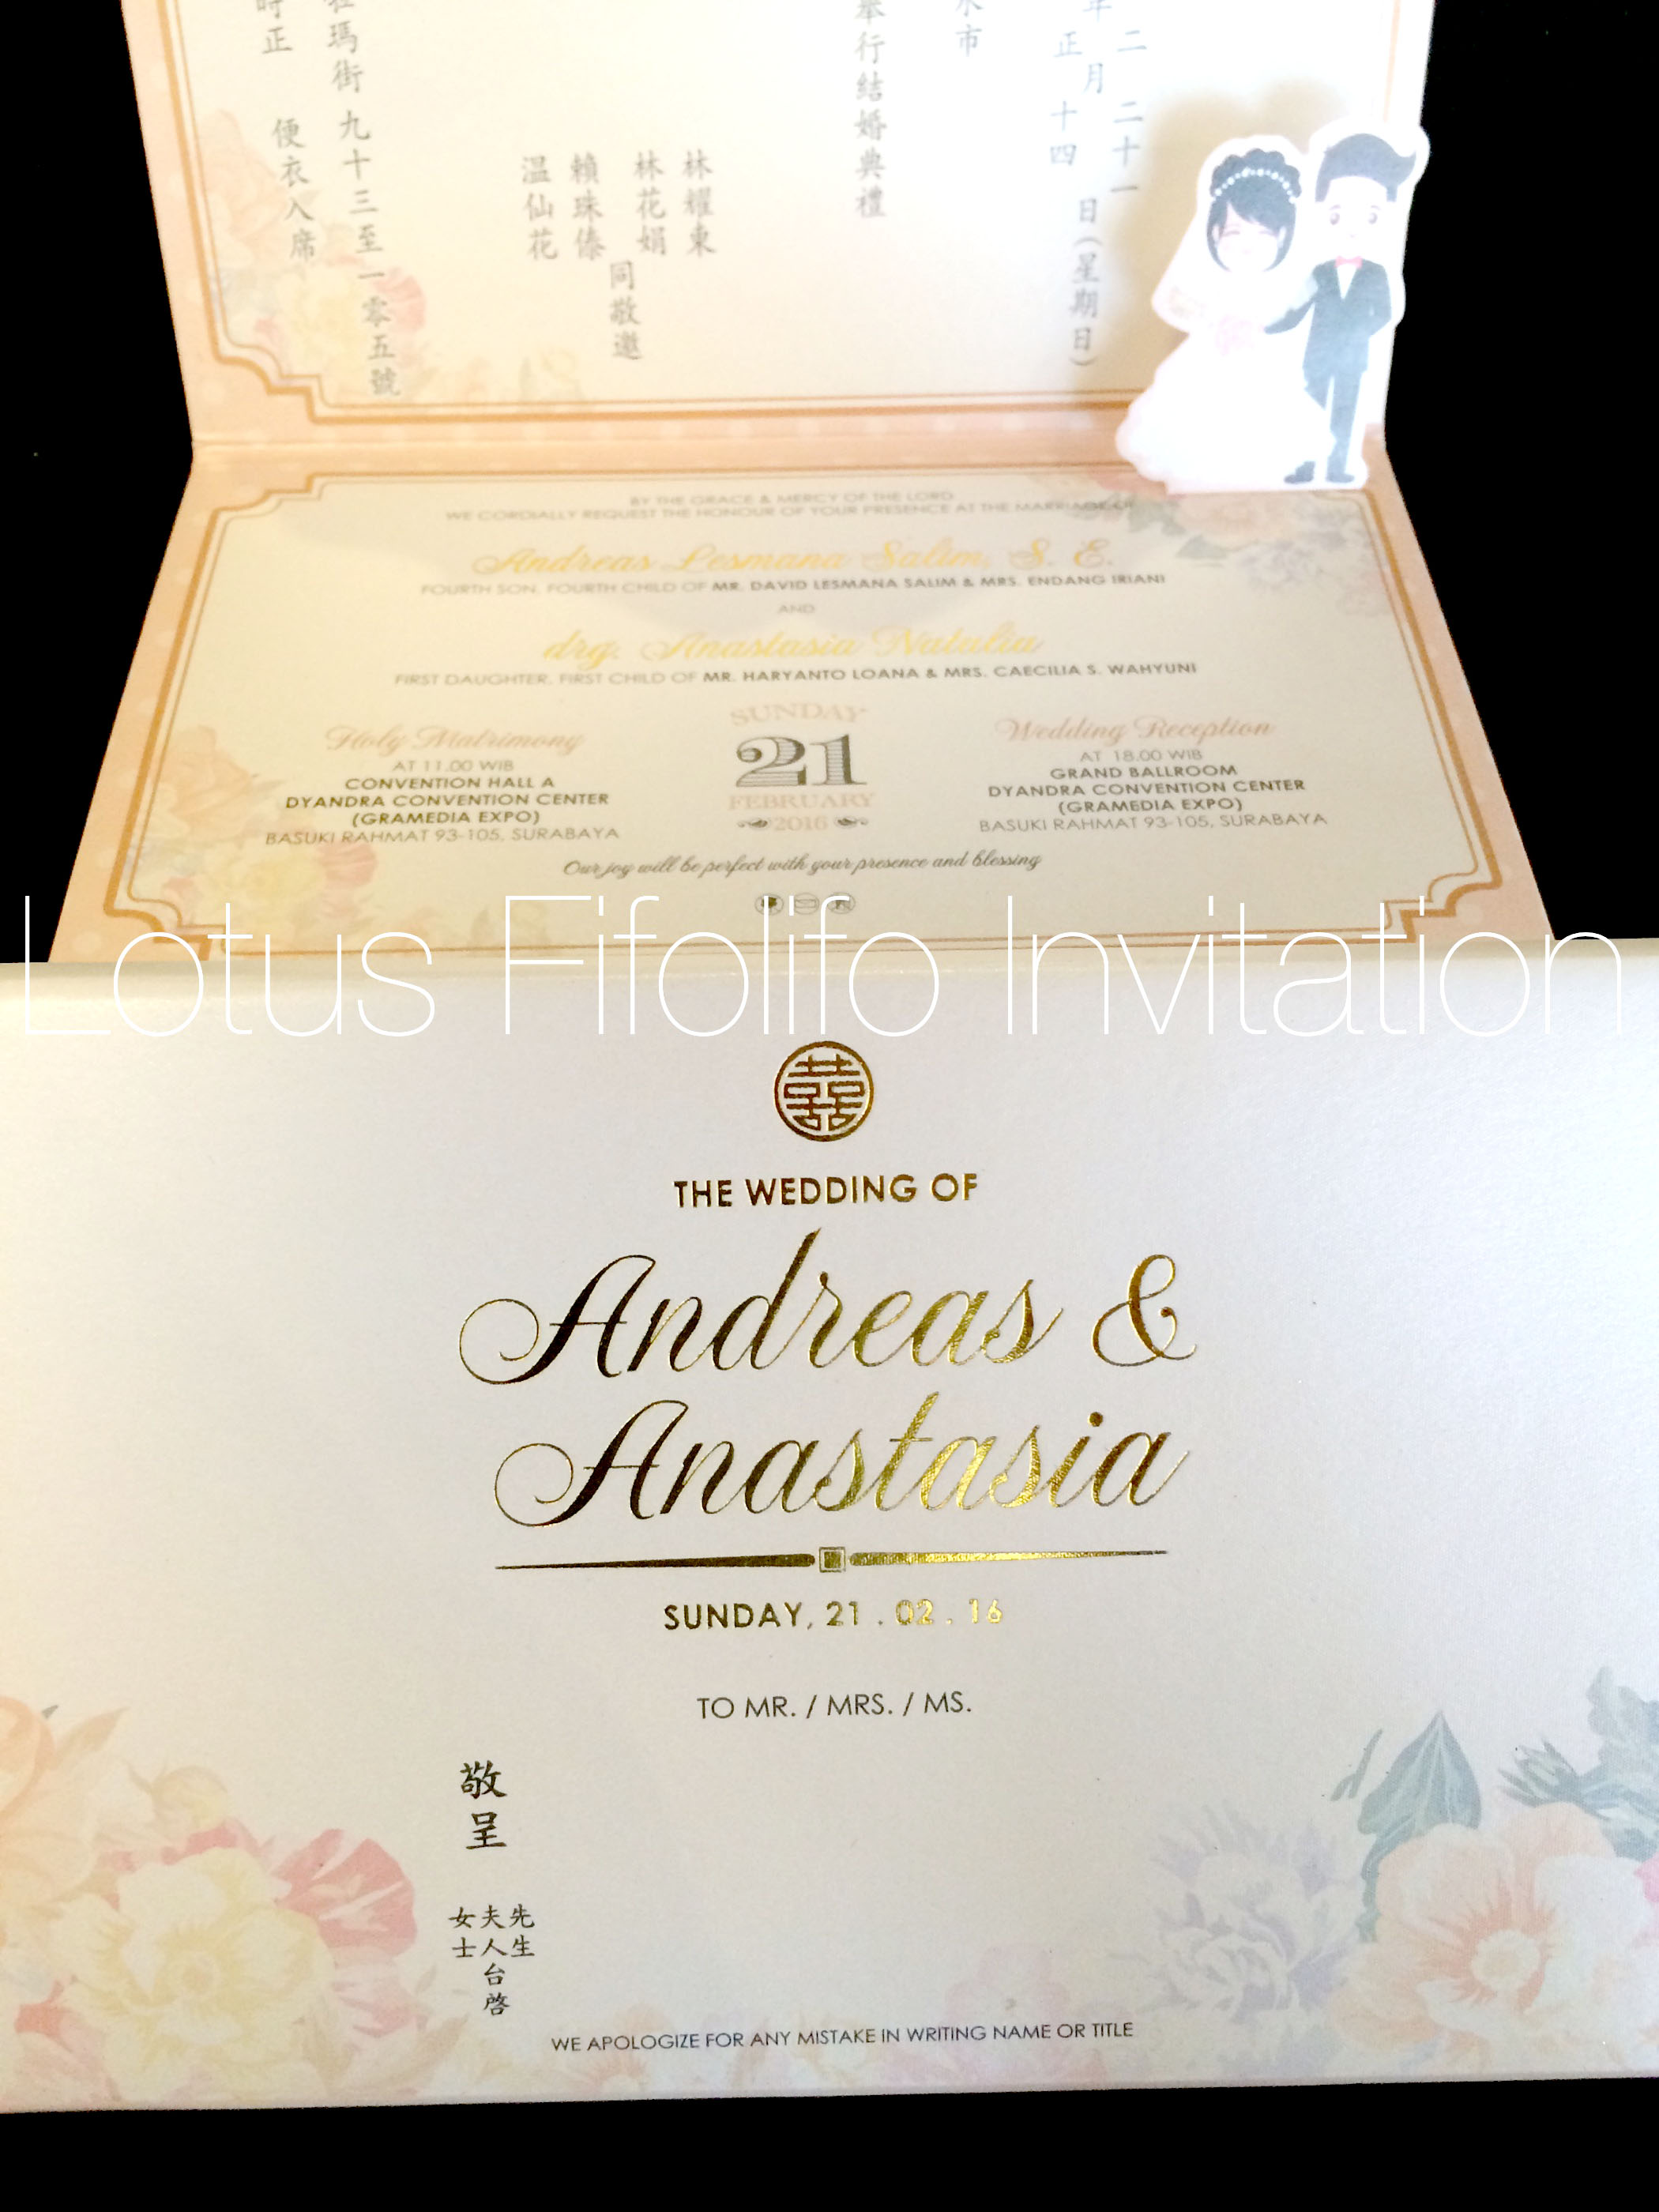 Andreas anastasia by lotus fifolifo invitation bridestory stopboris Gallery